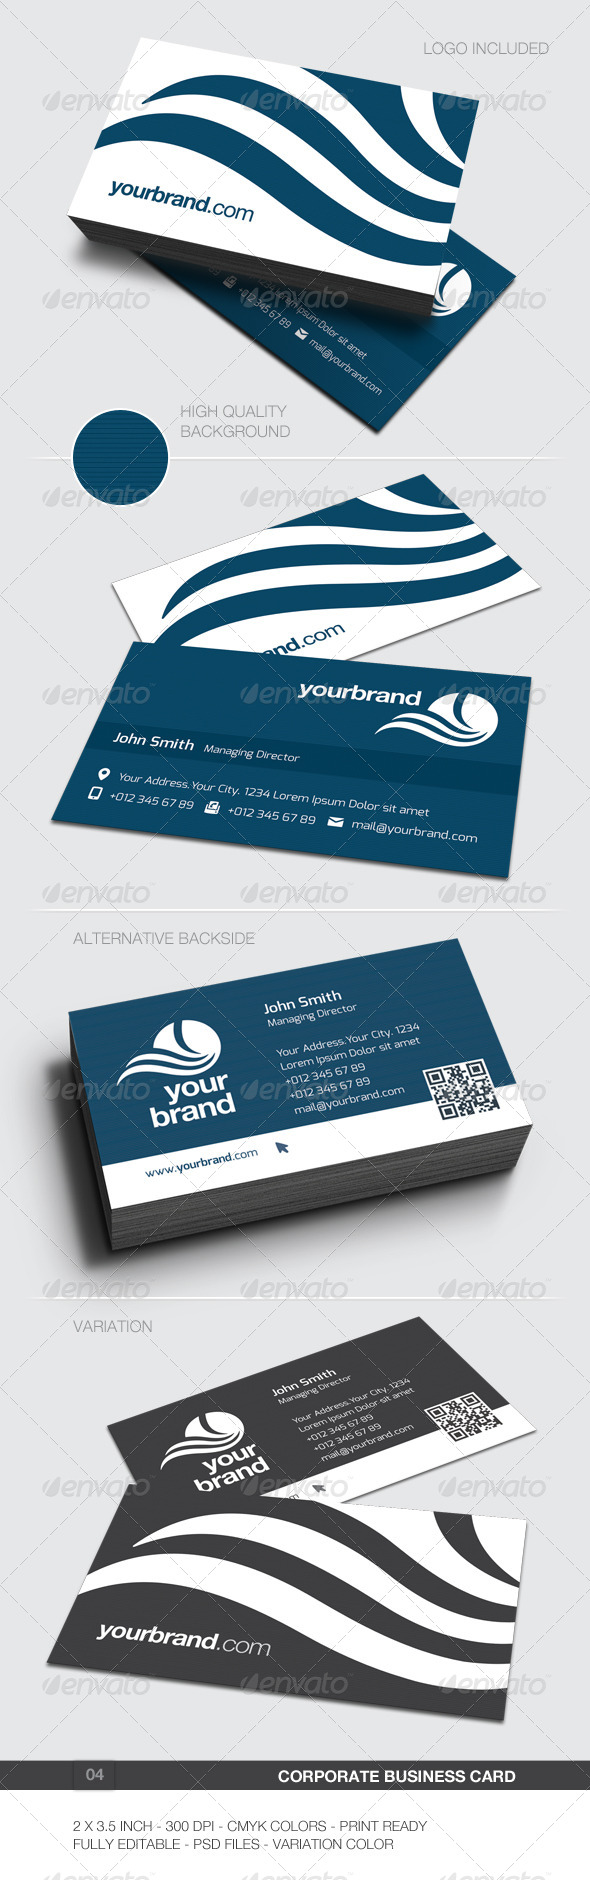 Corporate Business Card - 04 - Corporate Business Cards